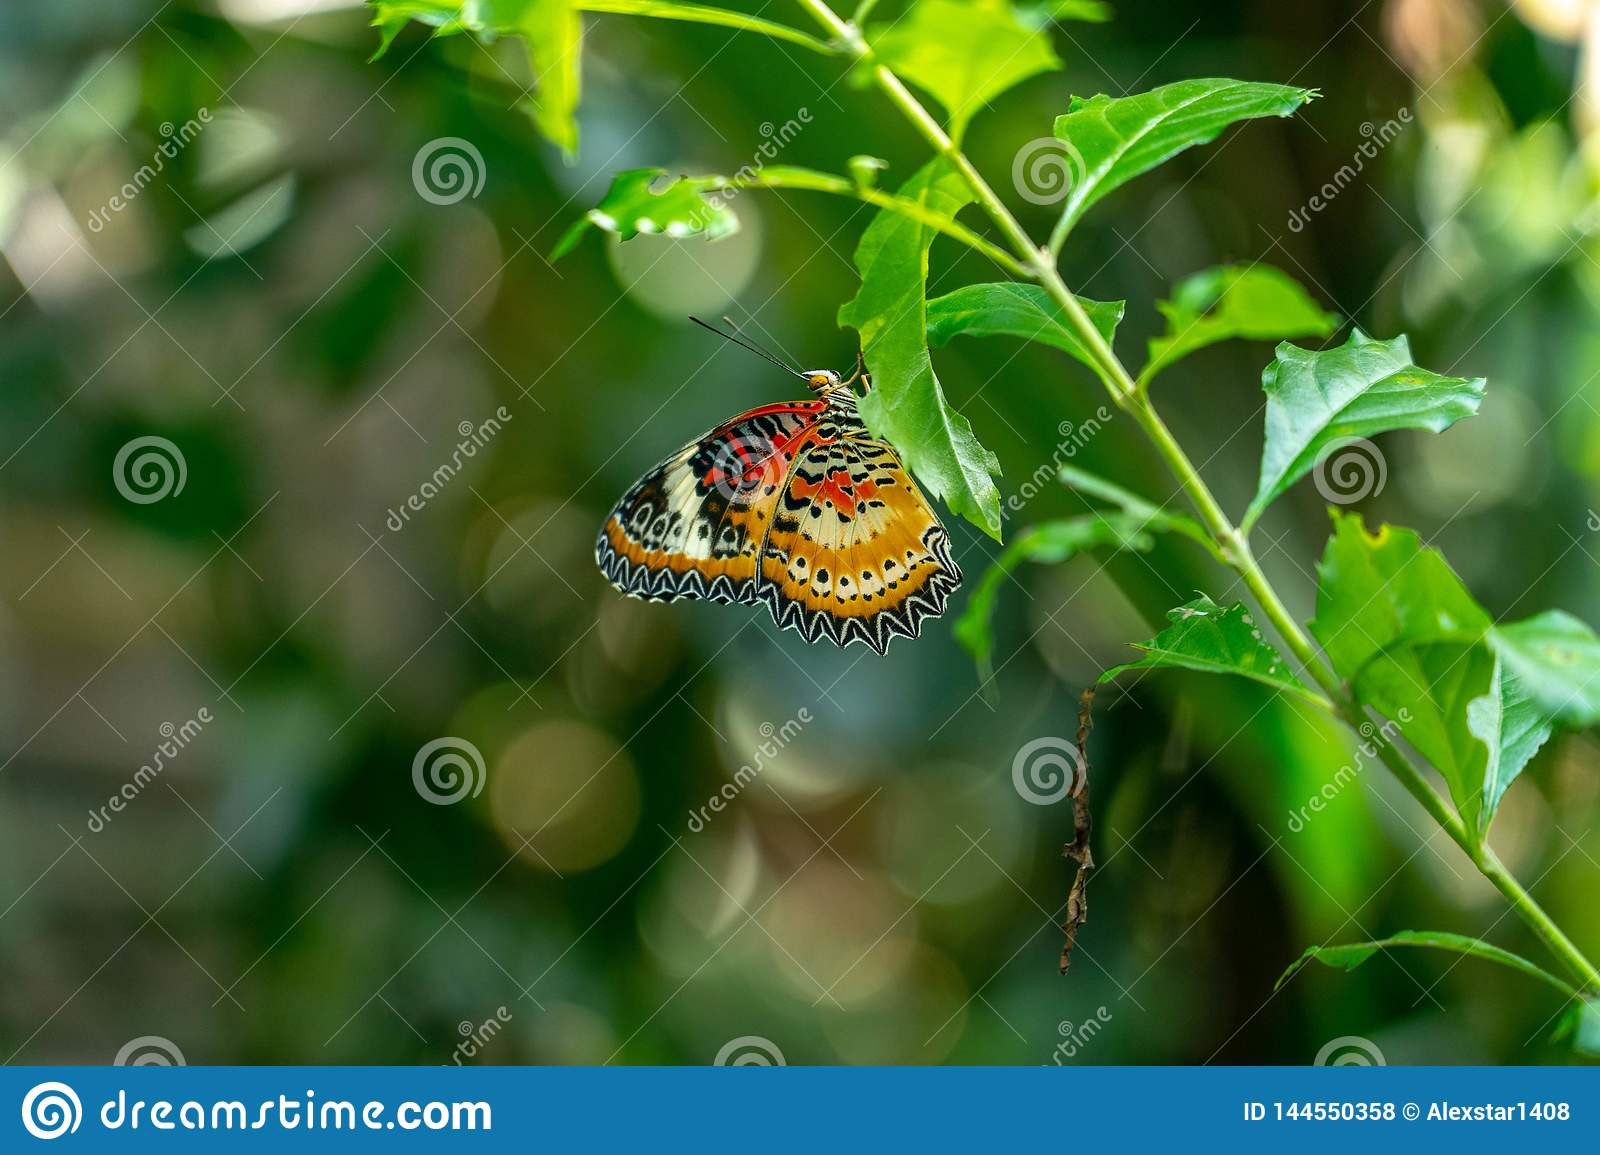 Butterfly sitting on a leafy branch